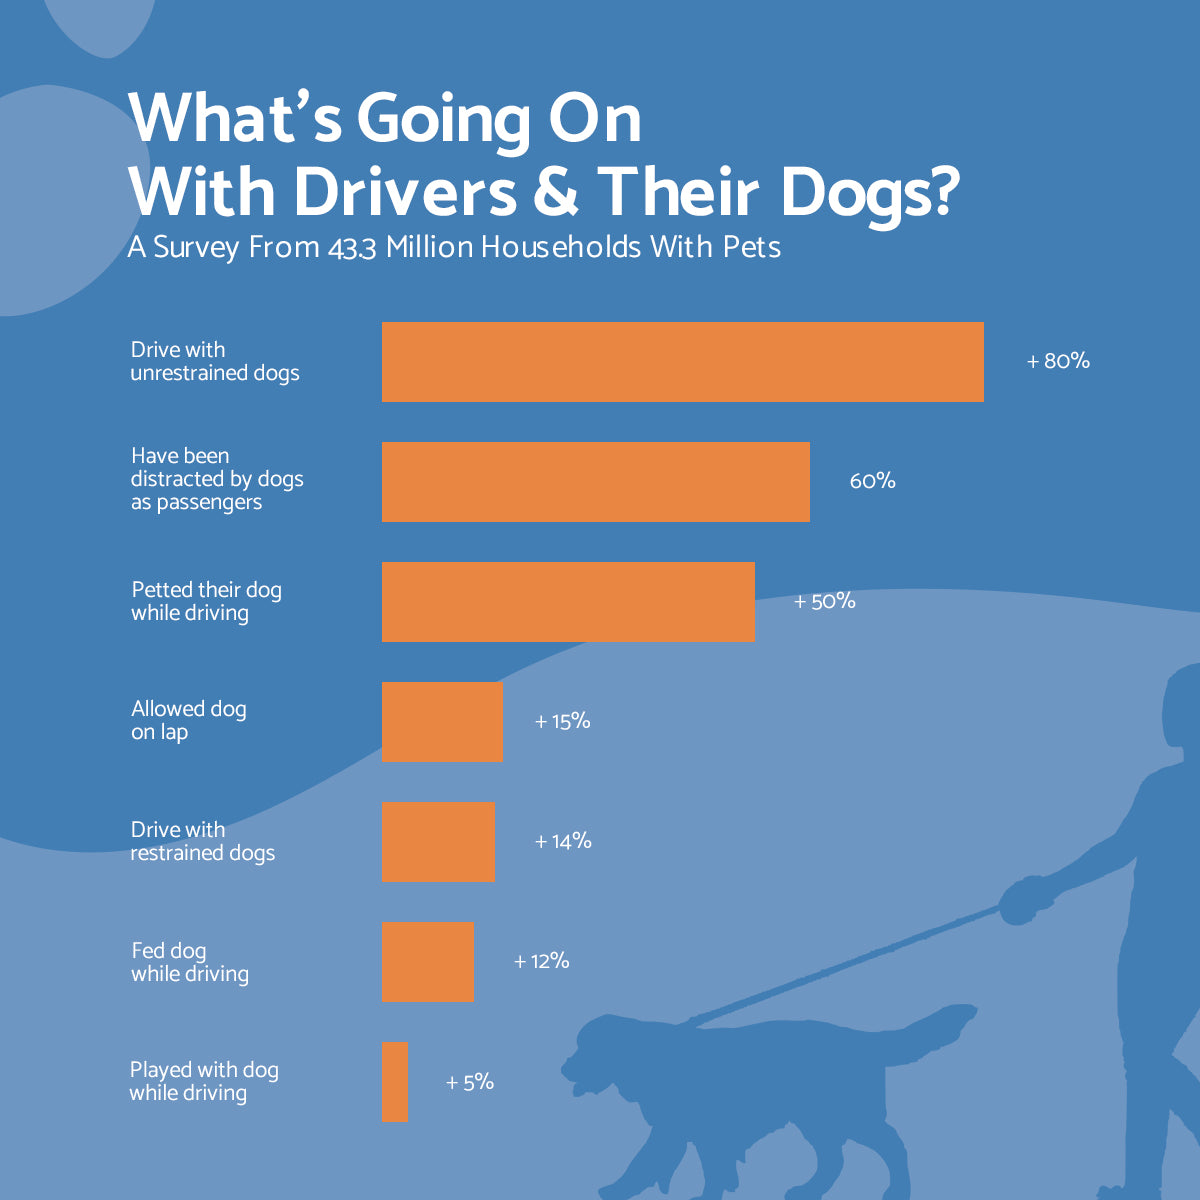 dogs-while-driving-statistic